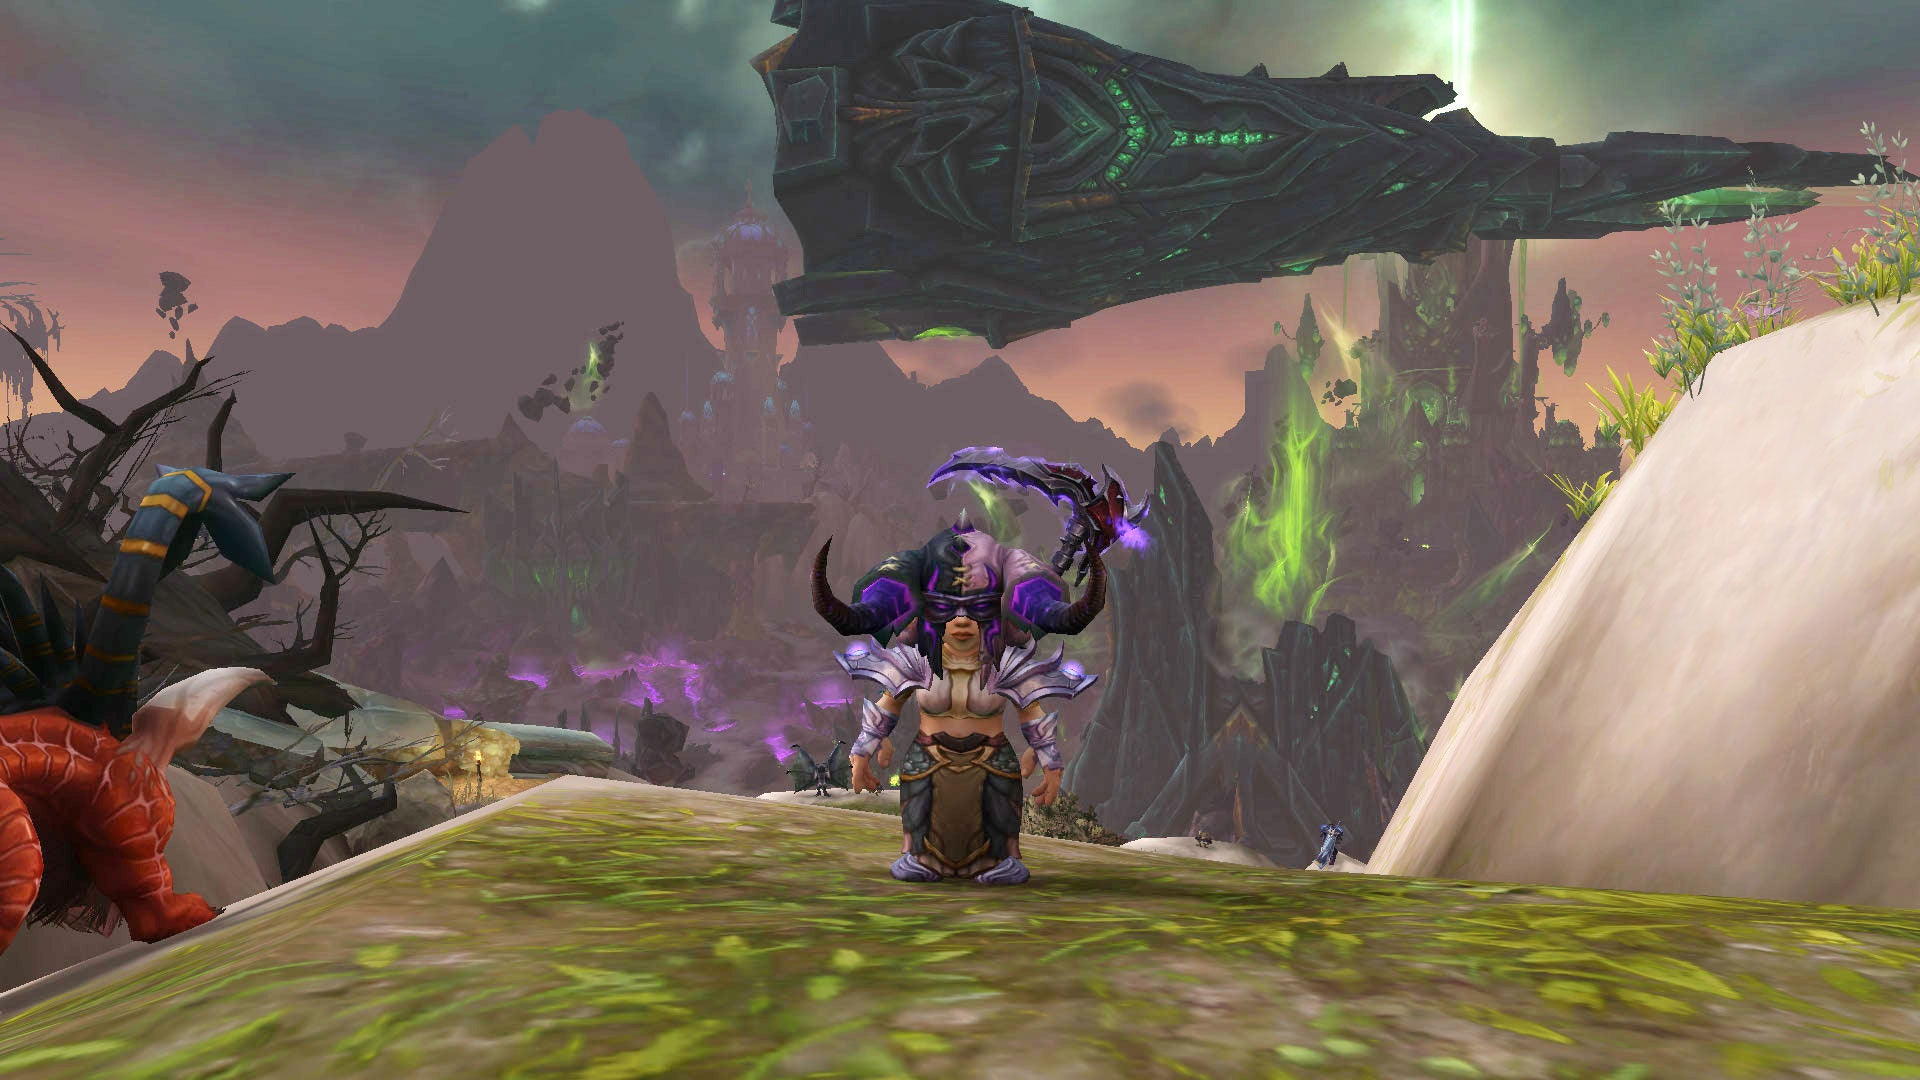 Taking The Battle To The Burning Legion In World Of Warcraft Update 7.2